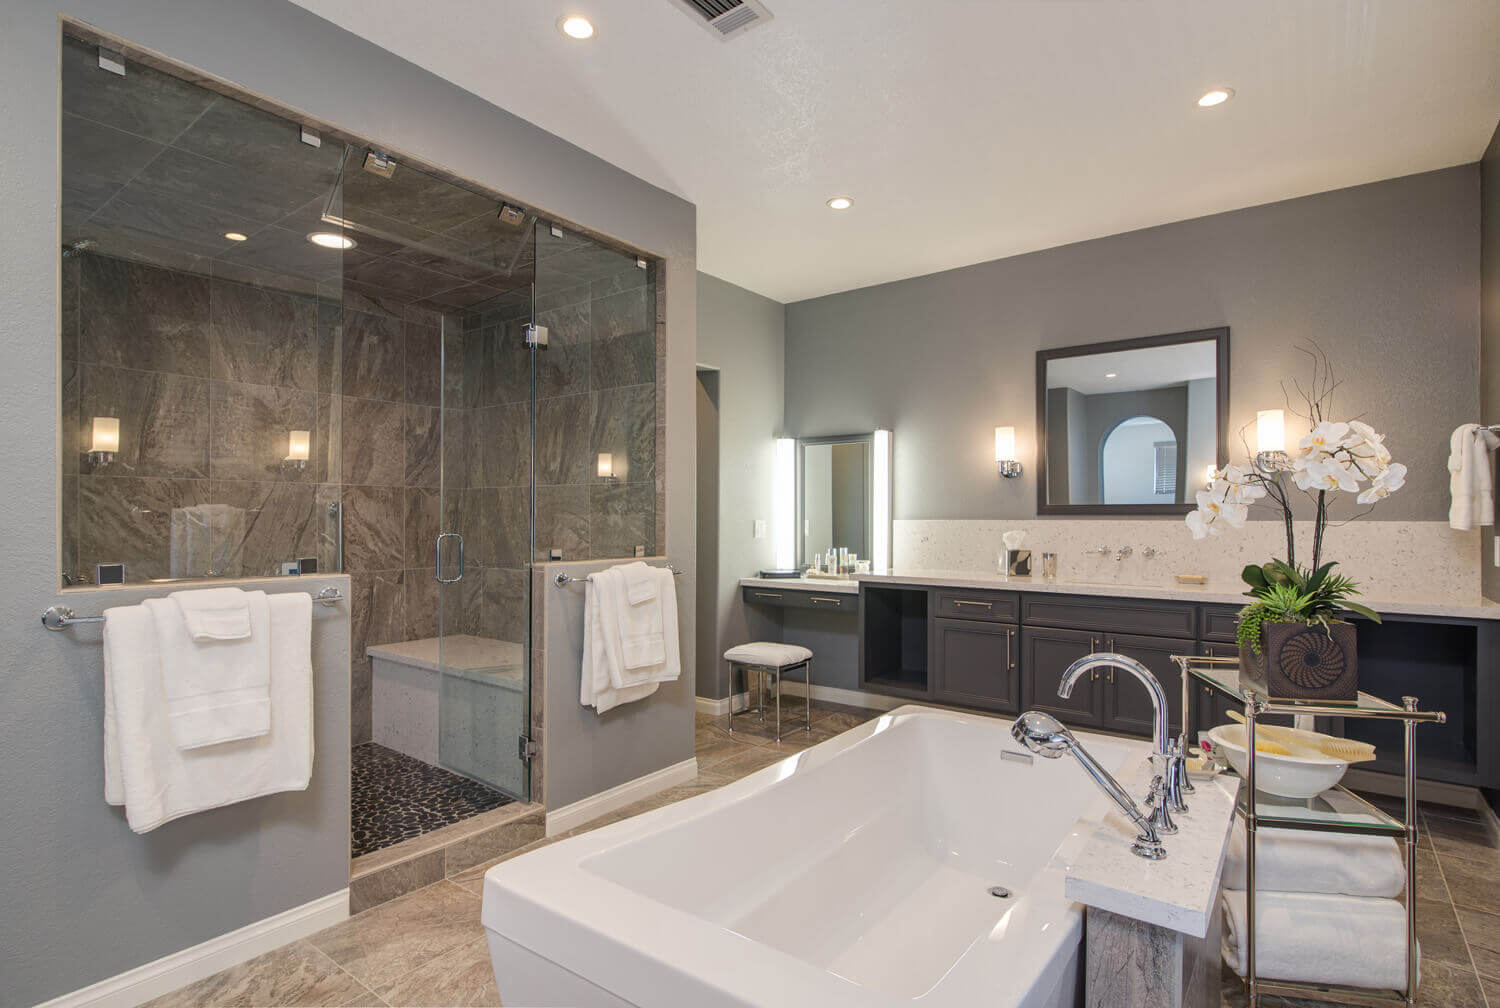 2020 Bathroom Renovation Cost Guide Remodeling Cost Calculator